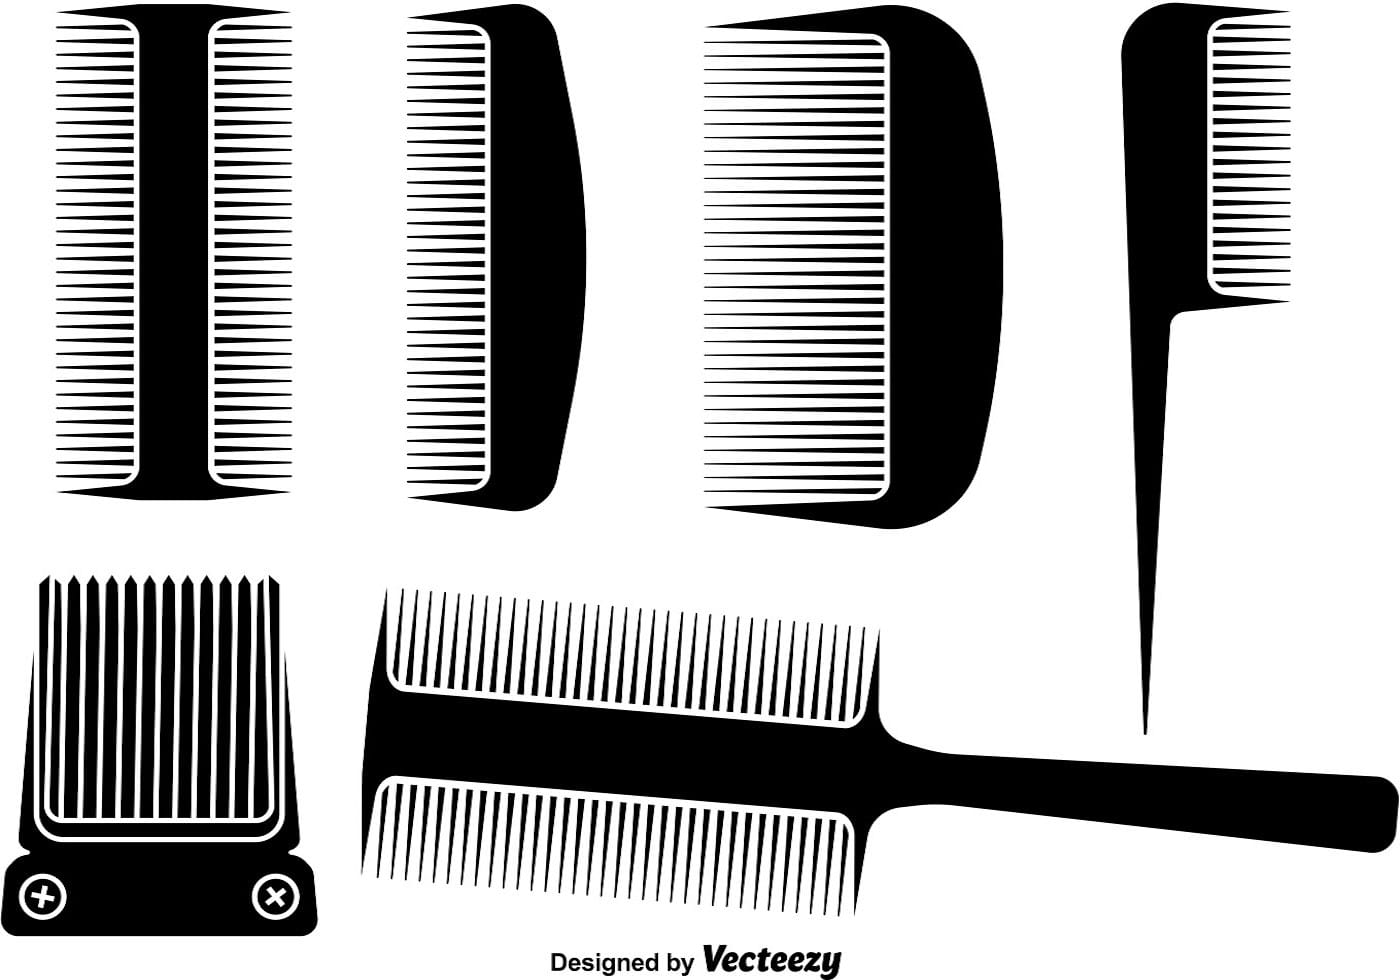 Hair Comb And Hair Clipper Designs Download Free Vector